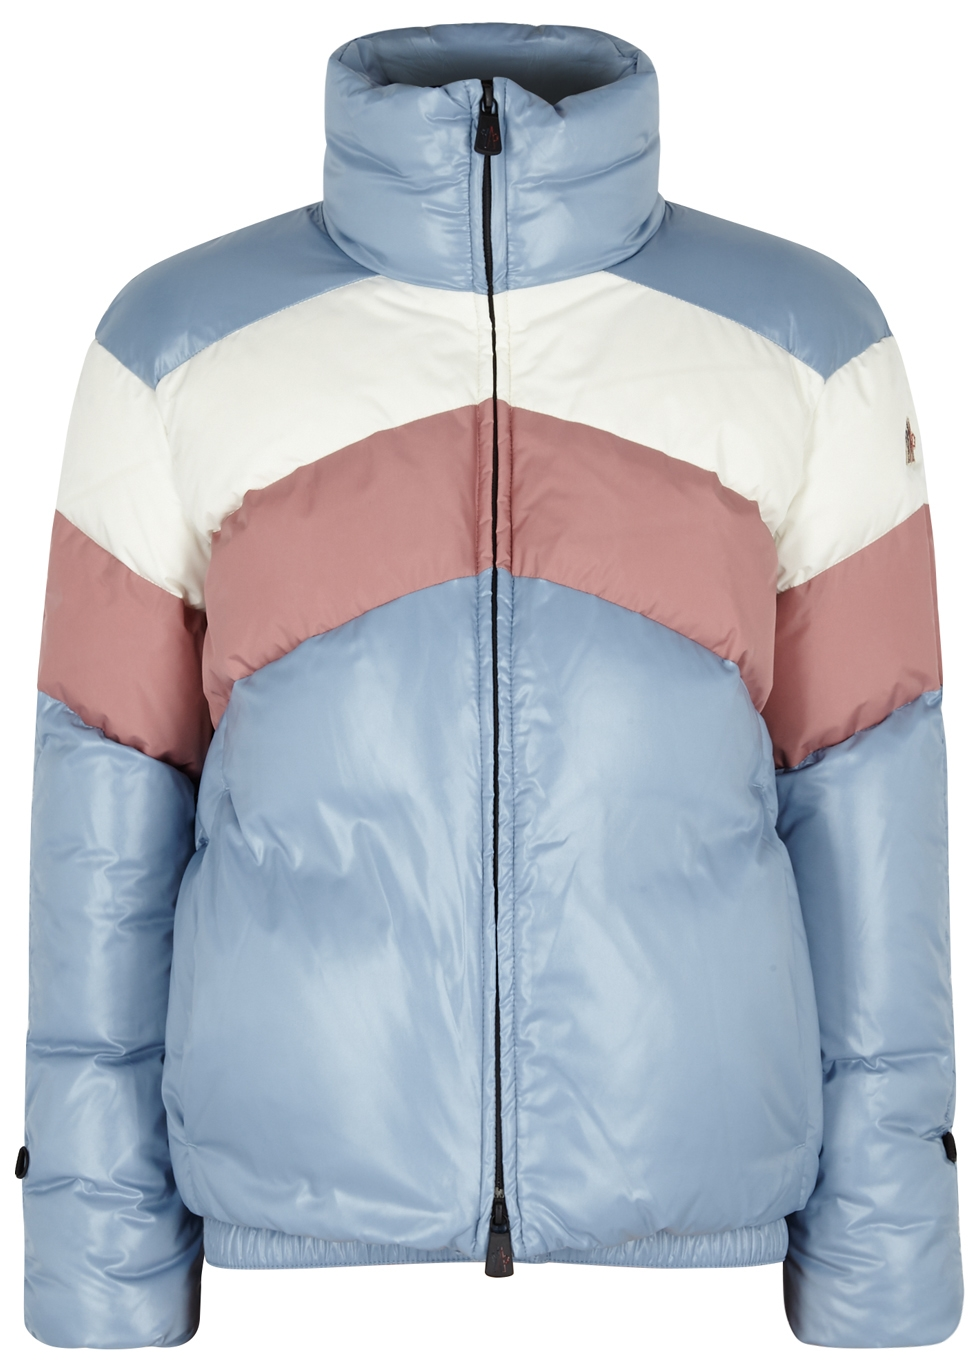 MONCLER LAMAR WATER-REPELLENT SHELL JACKET